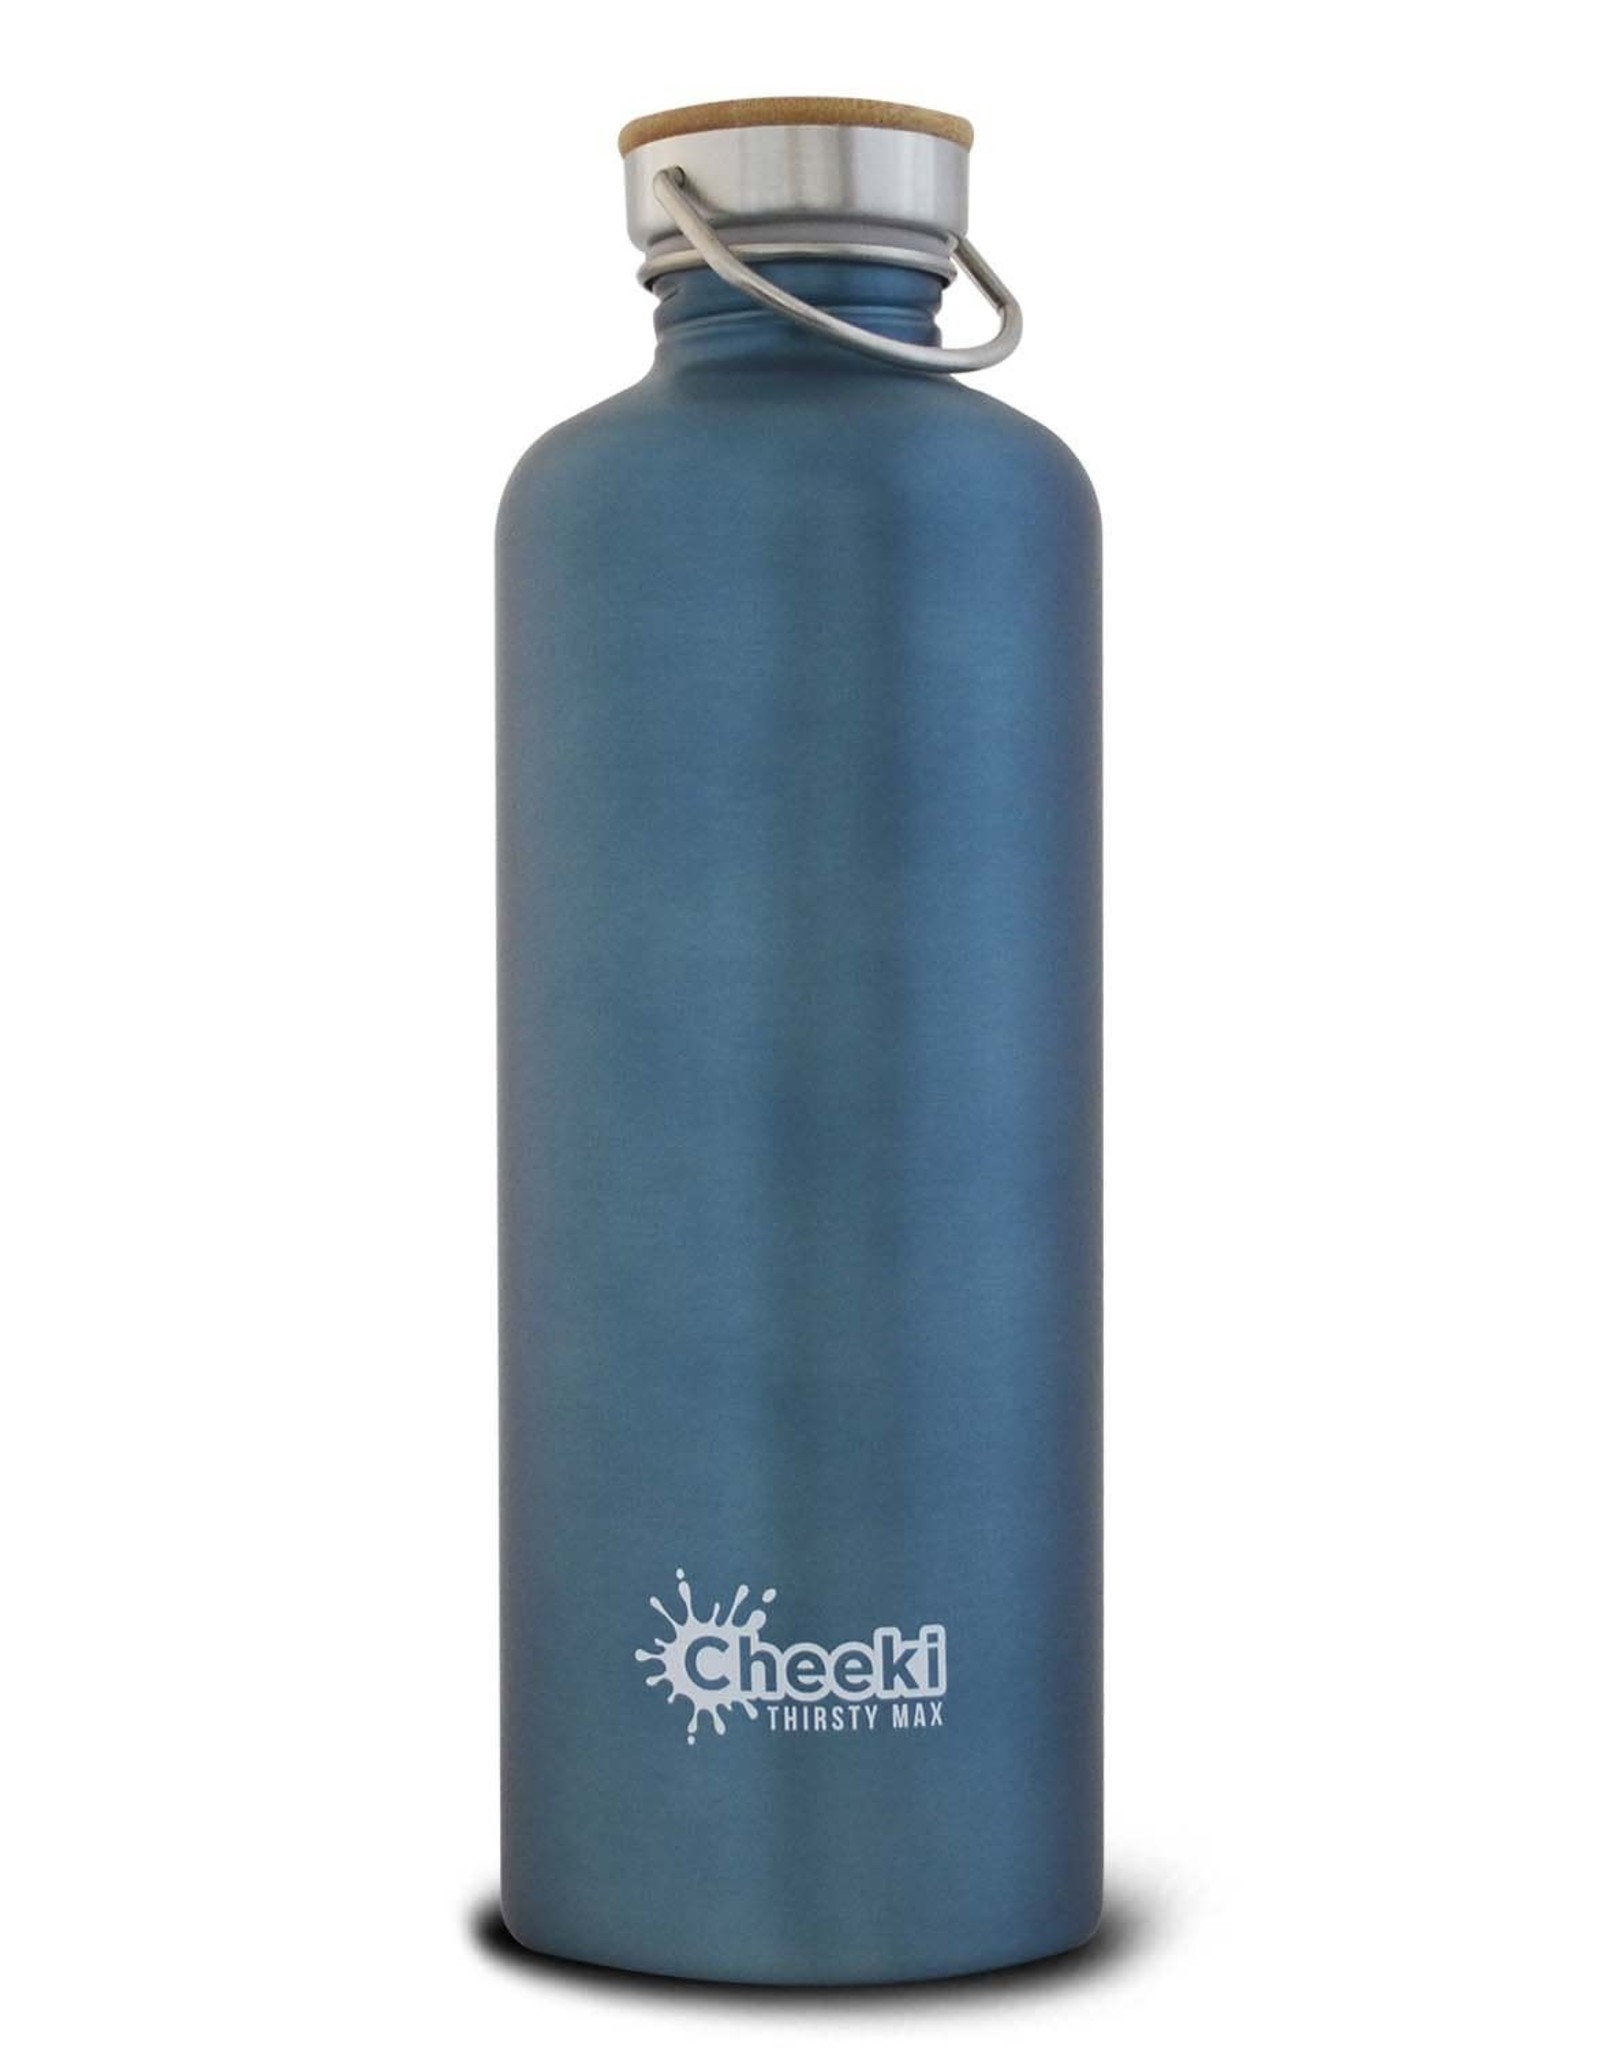 Cheeki Stainless Steel Water Bottle - 'Thirsty Max' - Teal - 1.6L